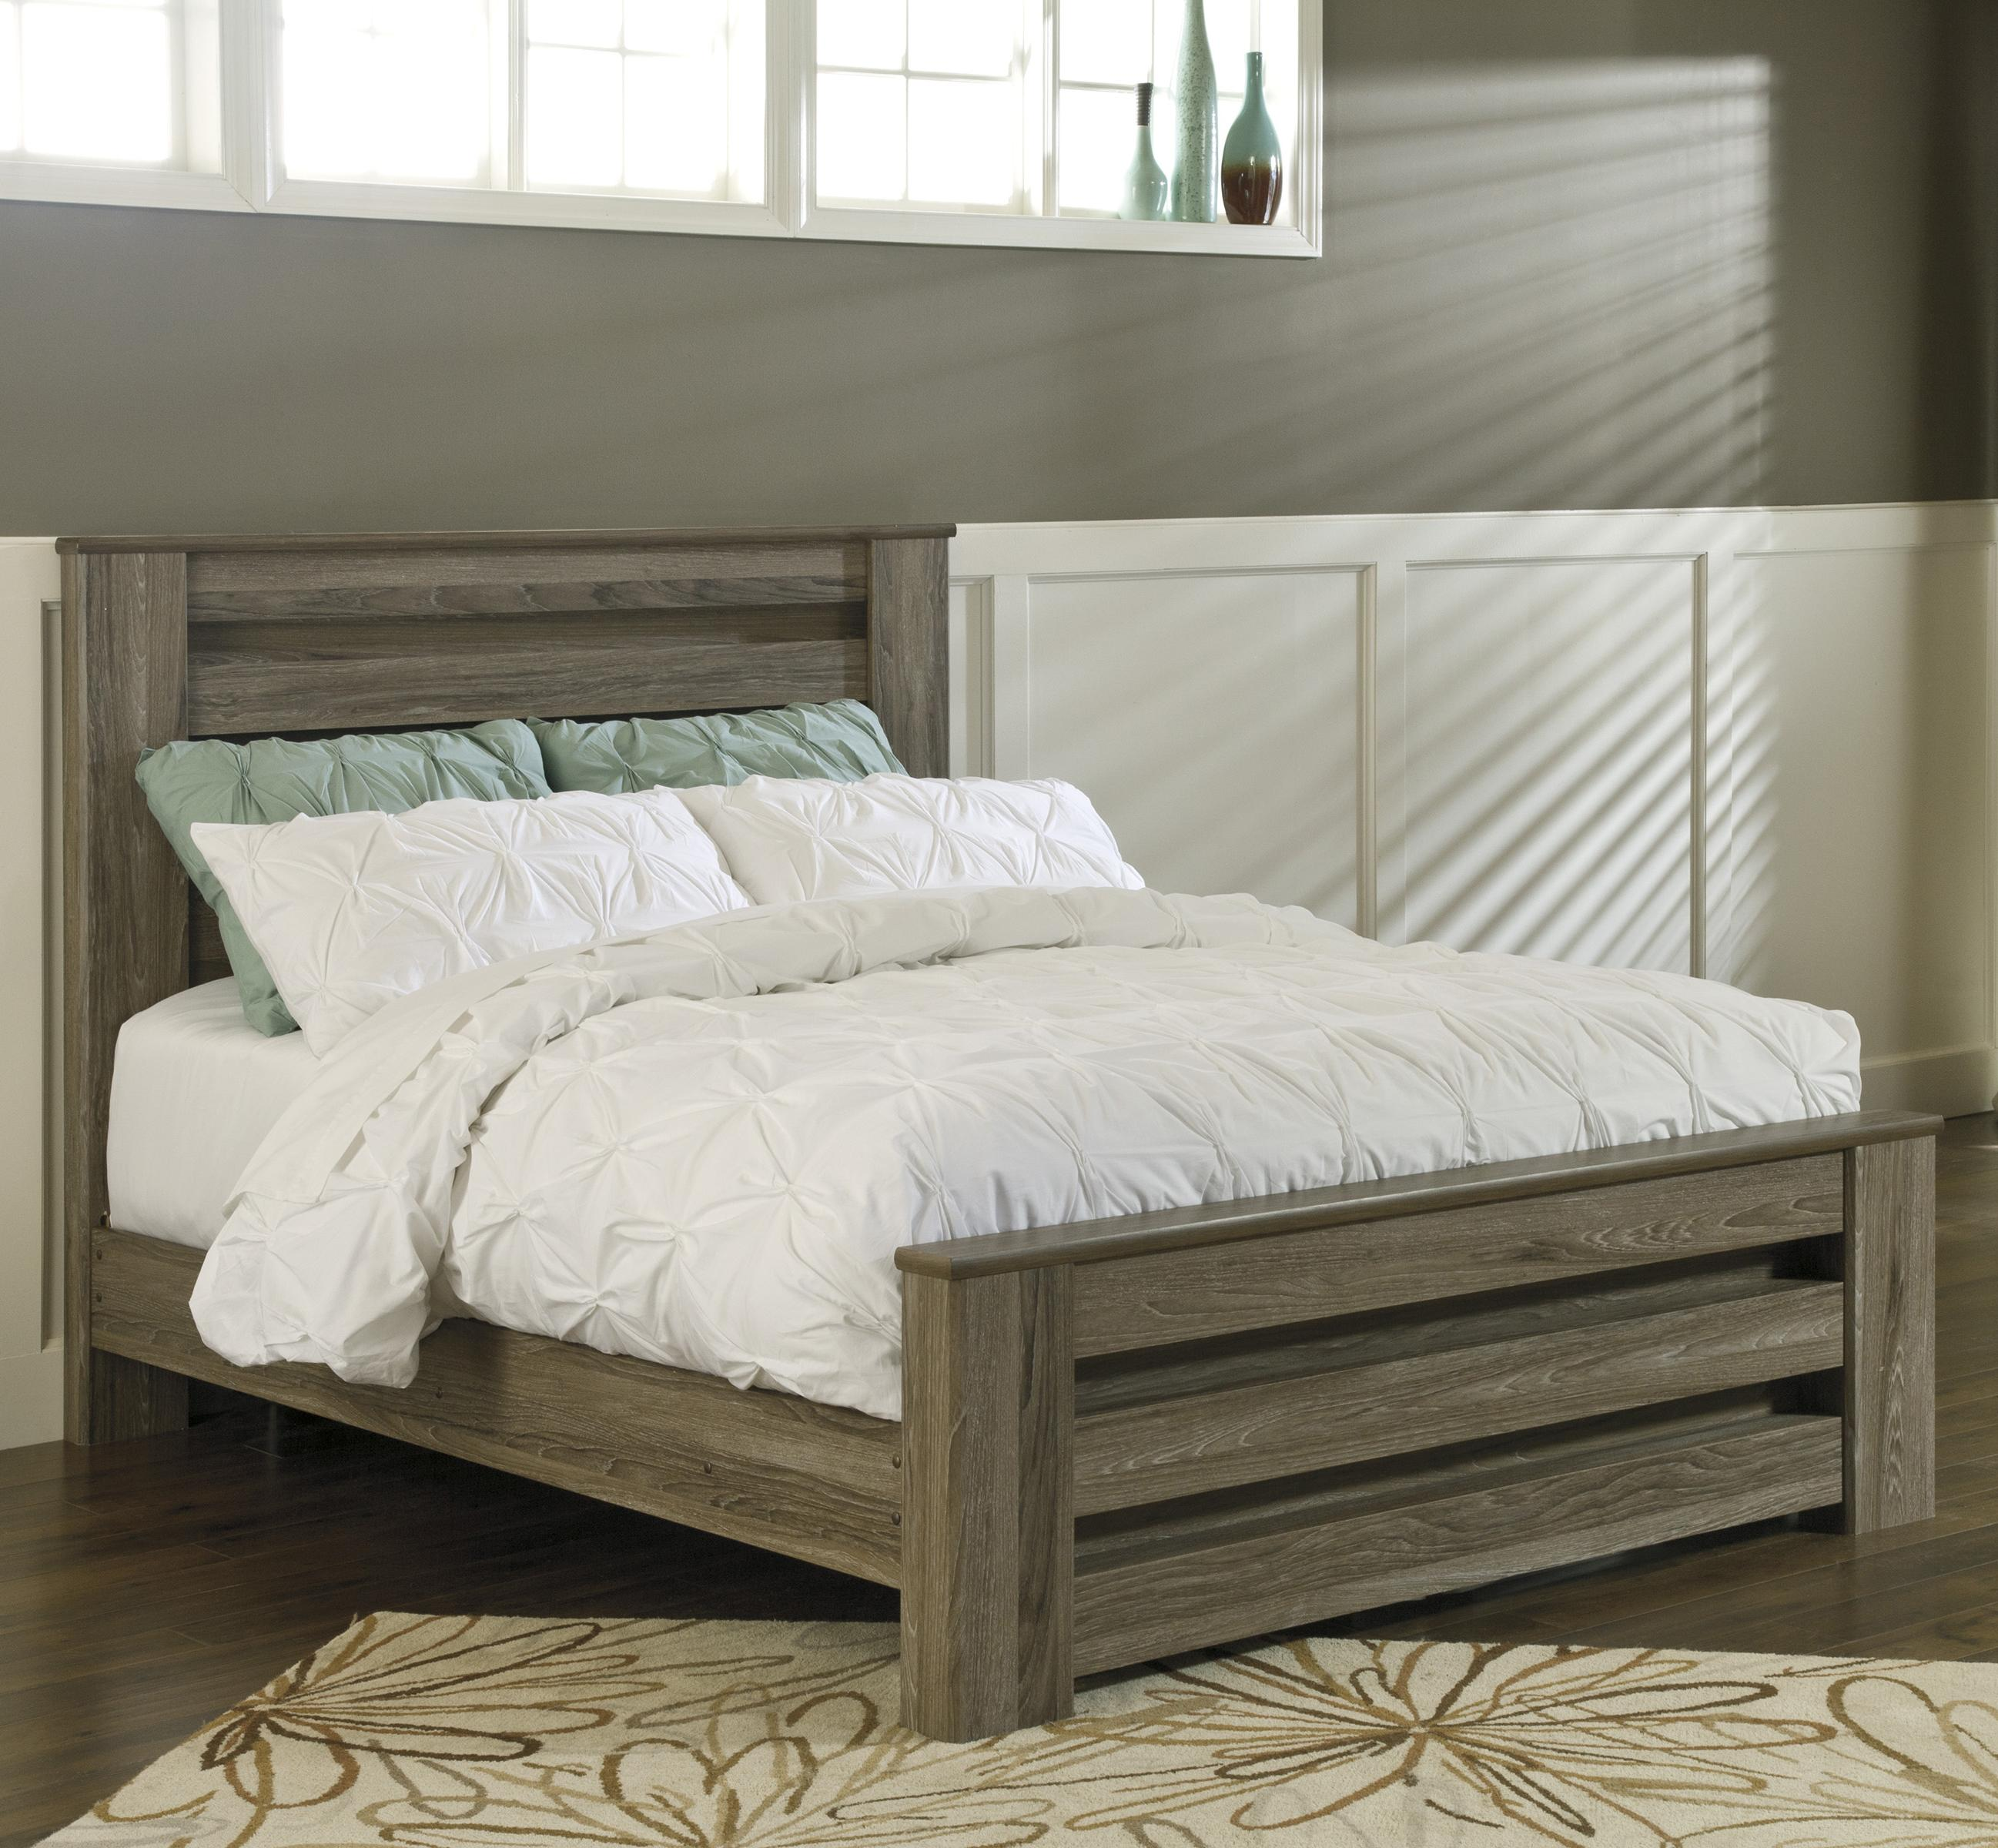 Ashley Furniture Beds: Signature Design By Ashley Zelen Queen Poster Bed In Warm